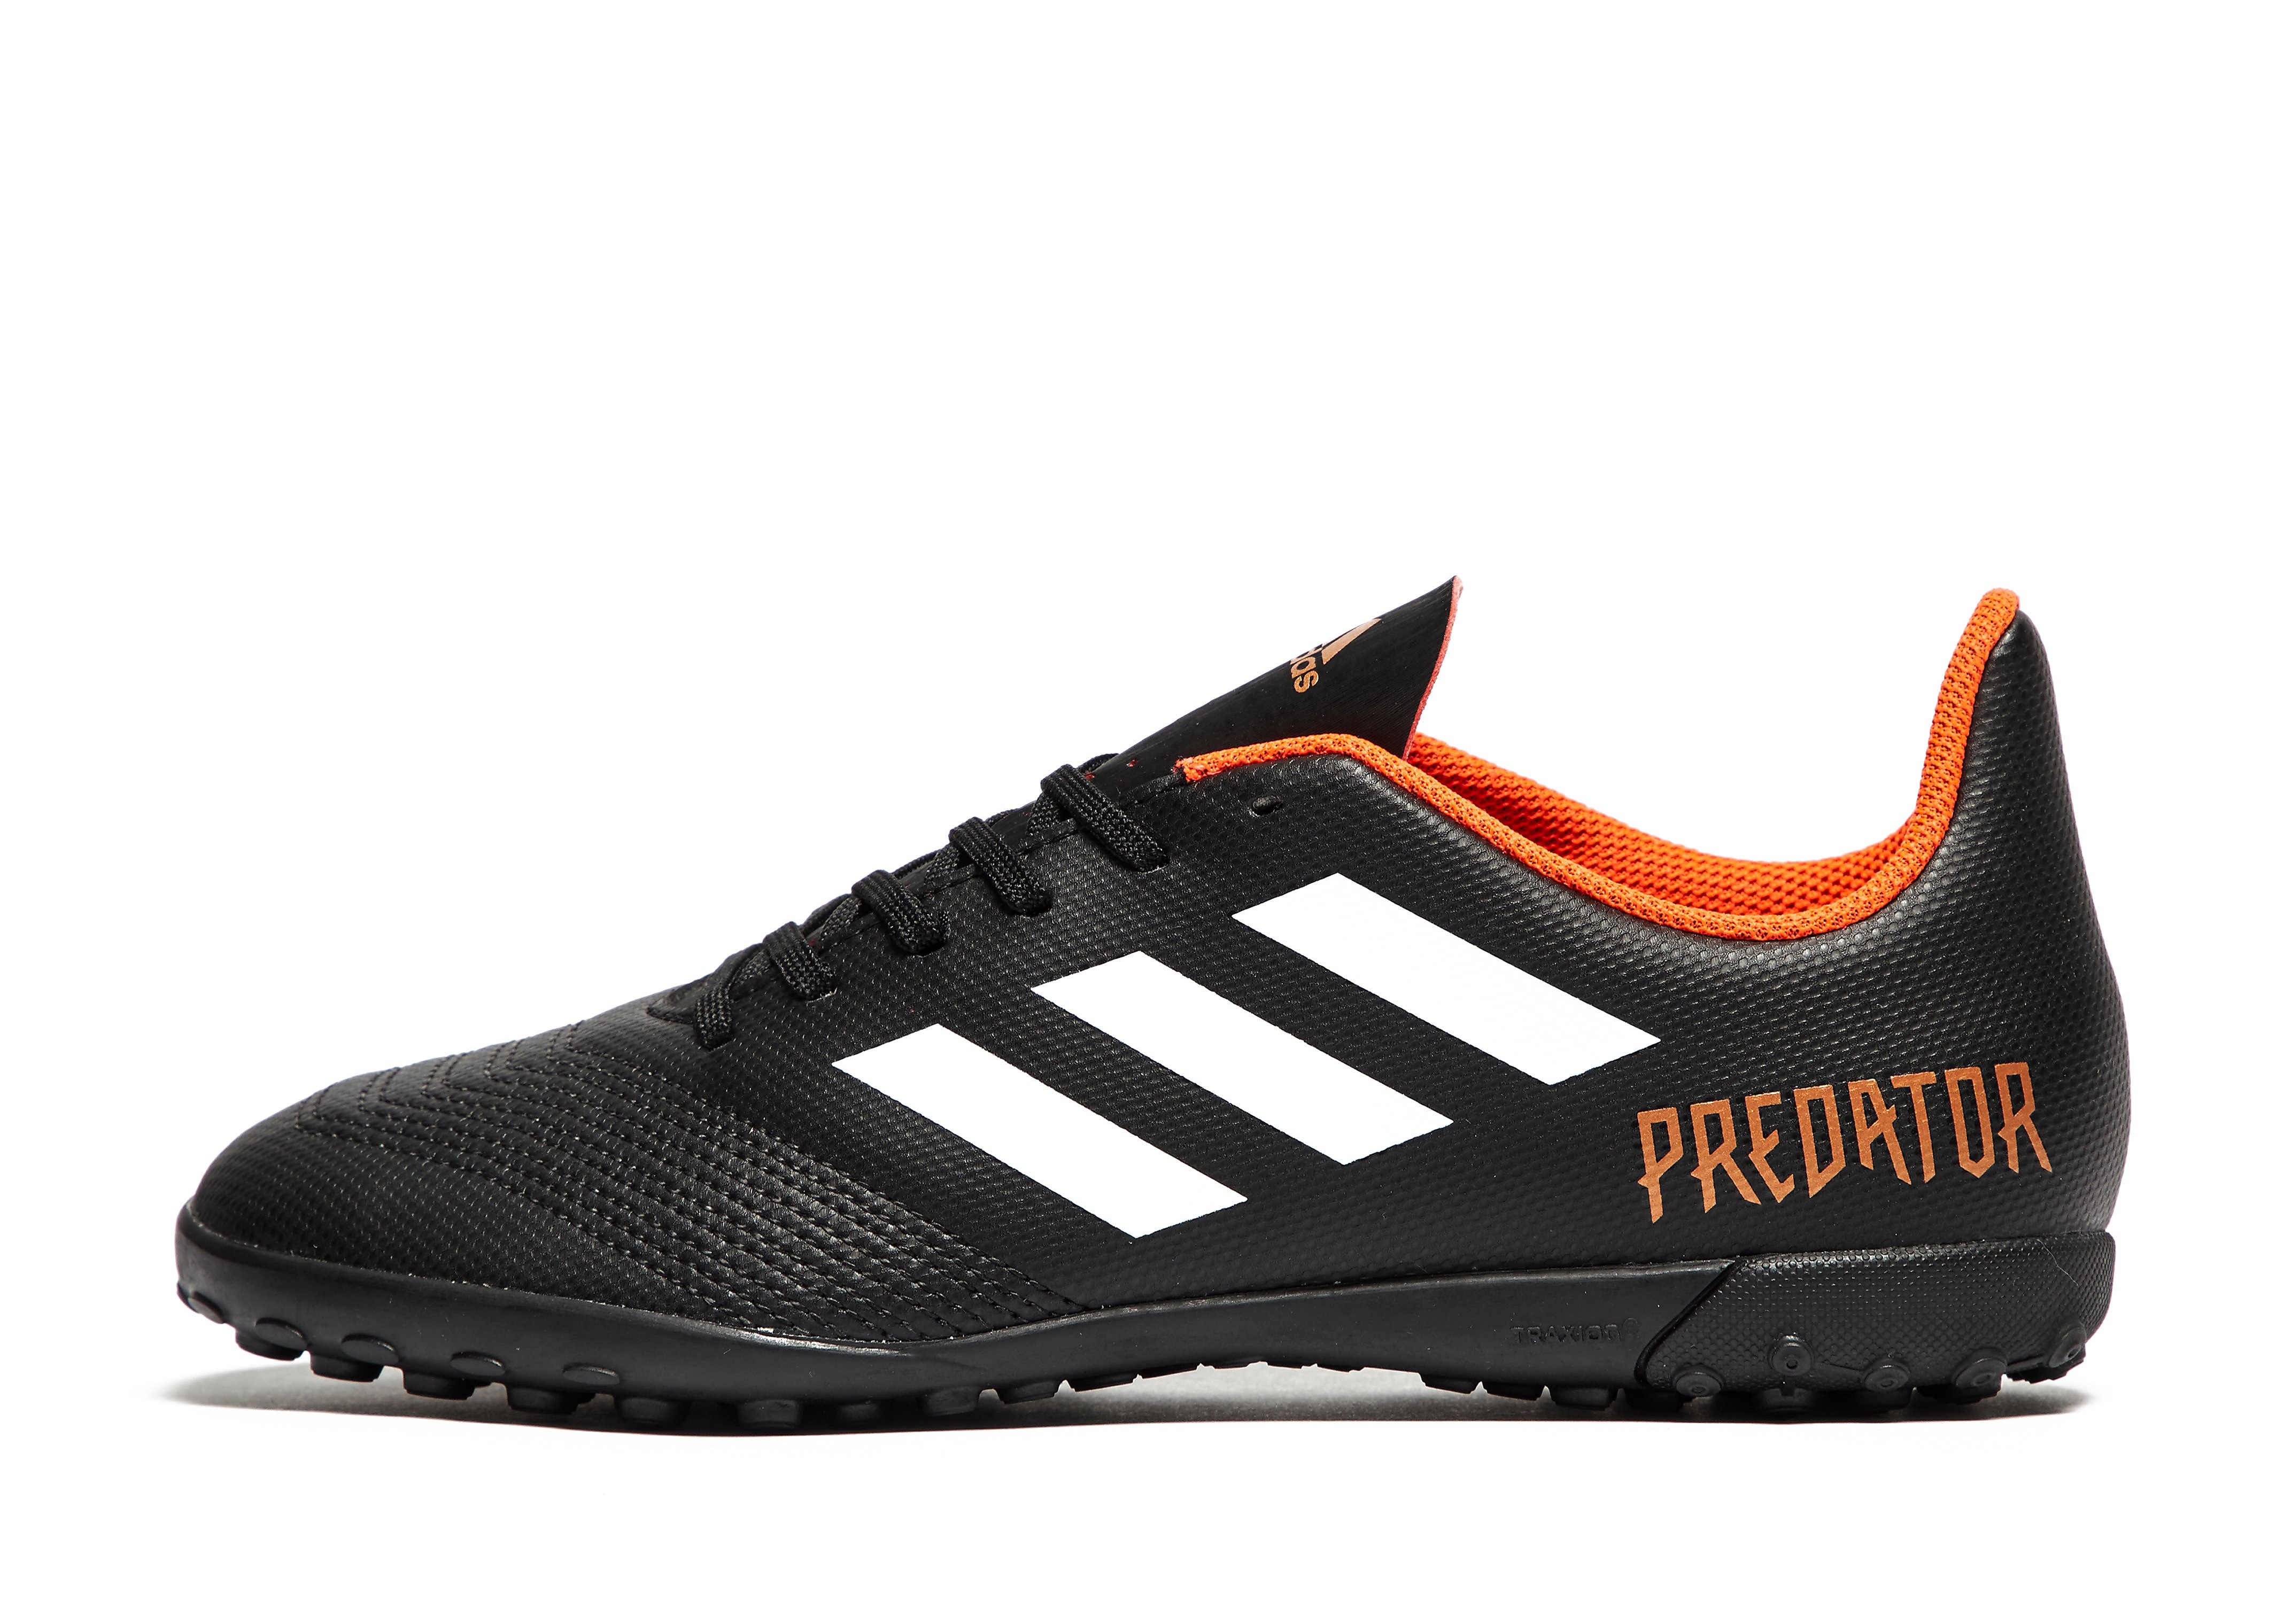 adidas Predator 18.4 TF Junior